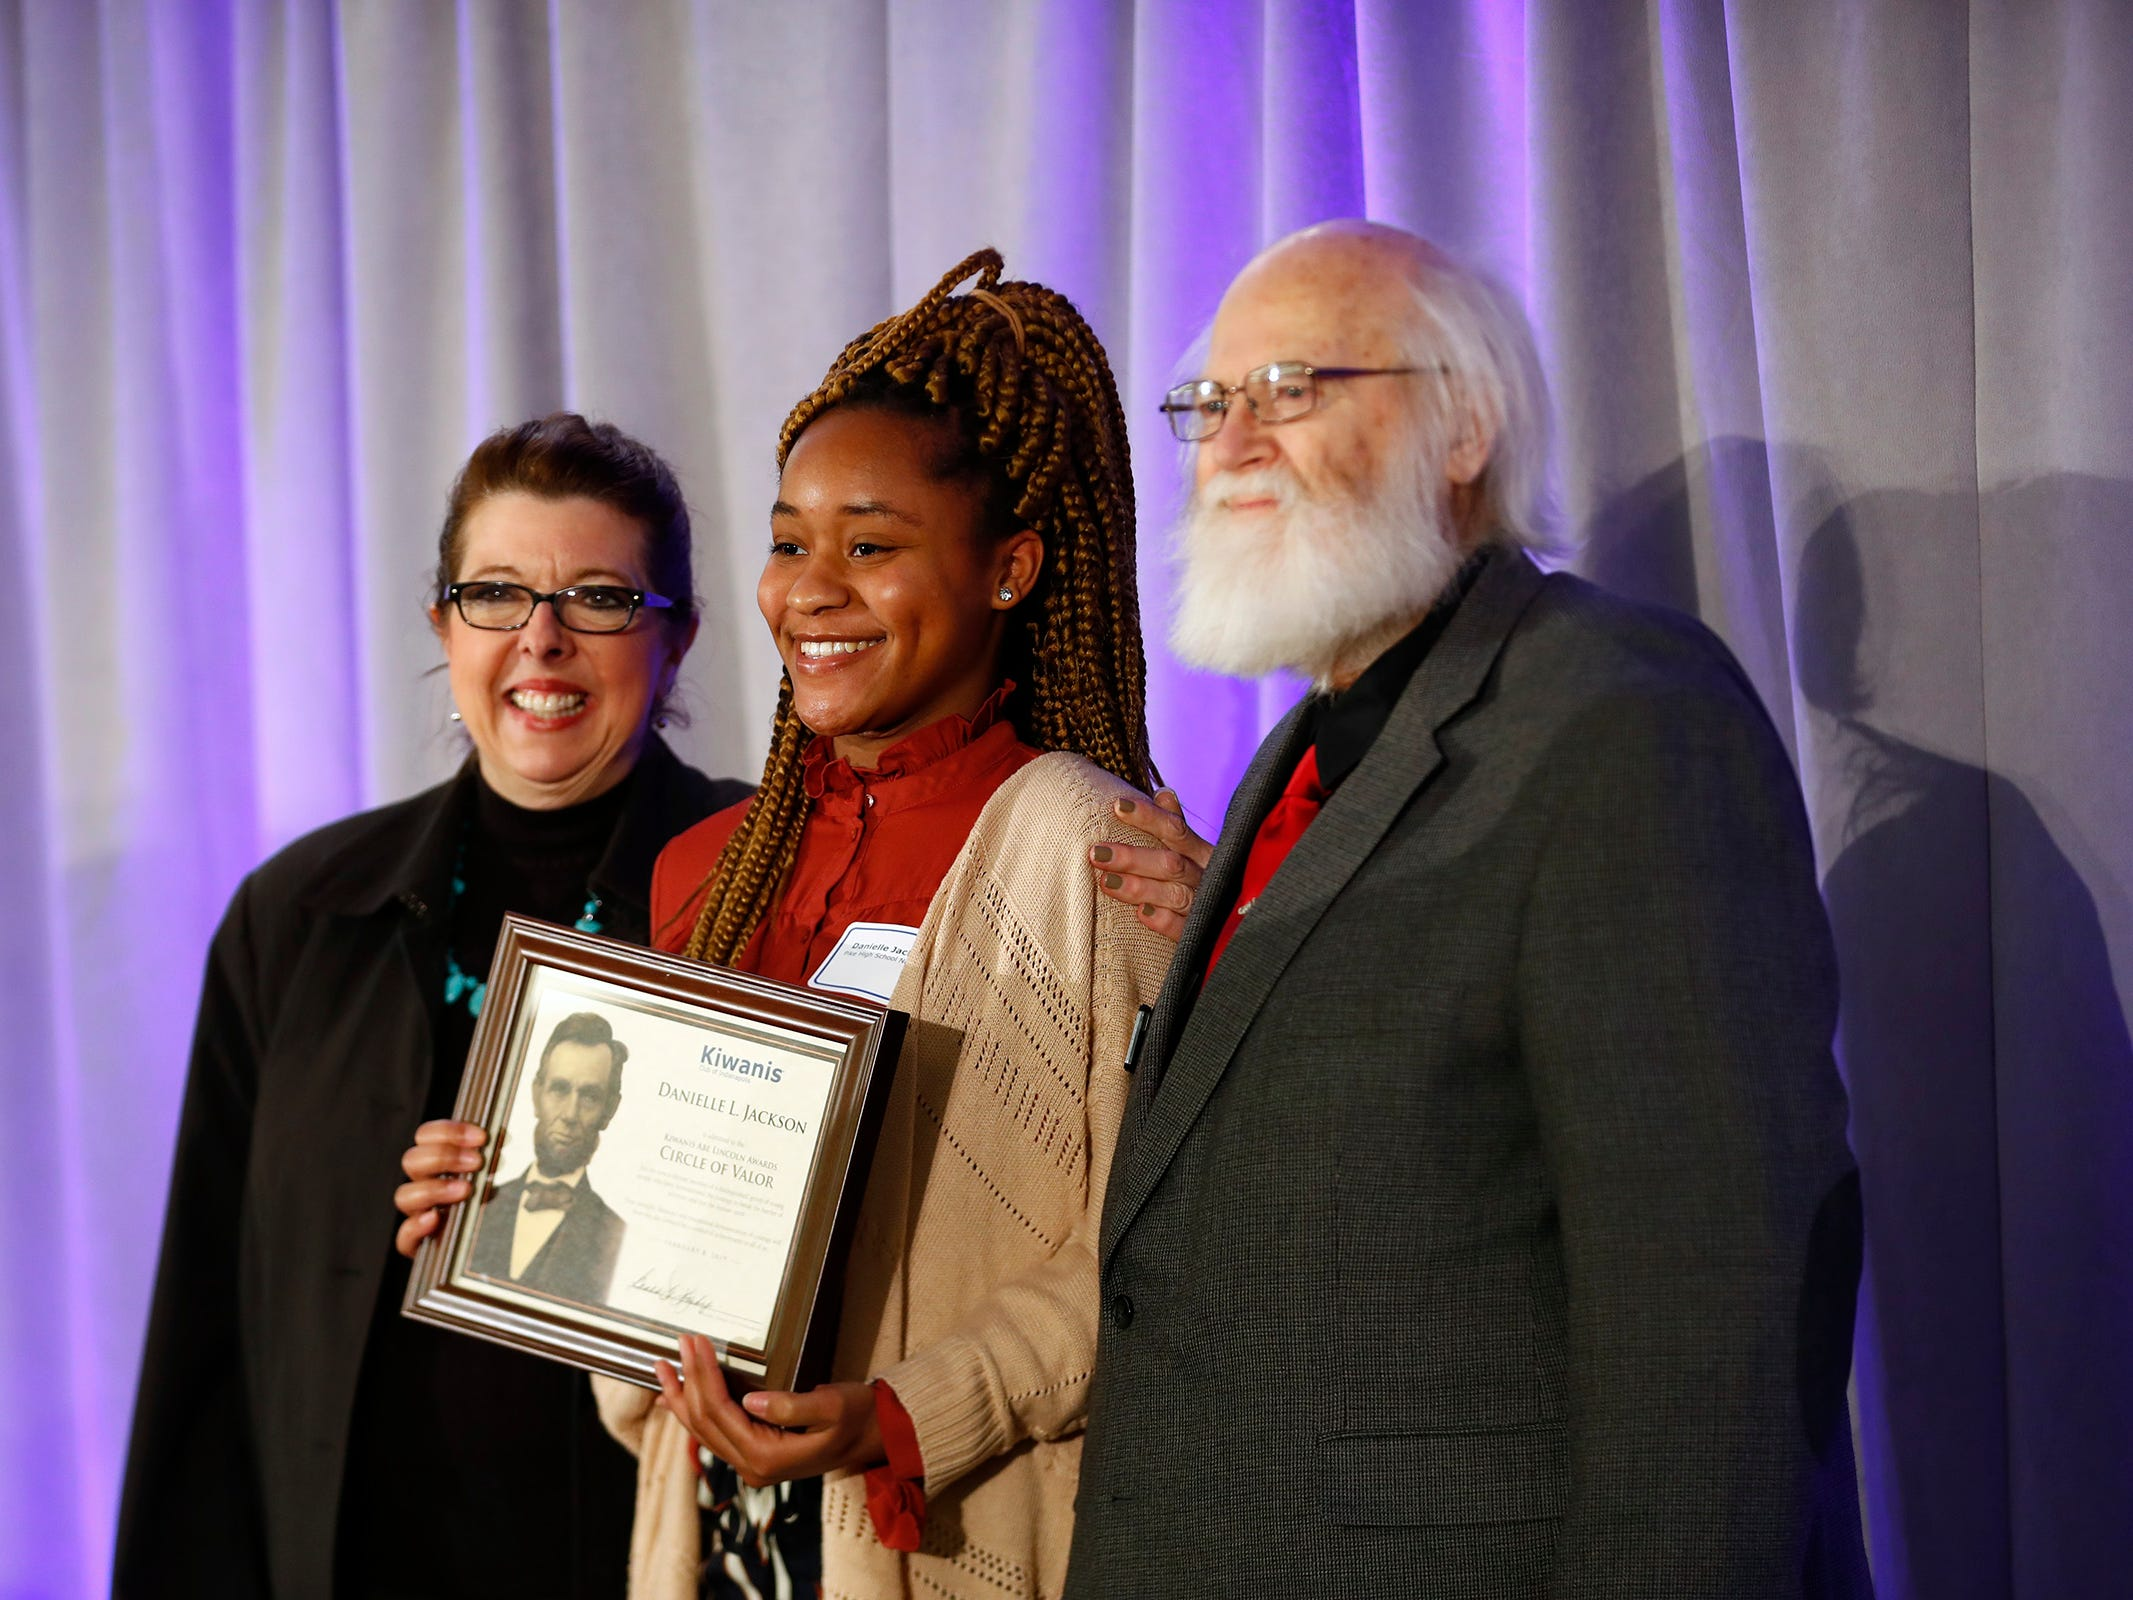 Danielle Jackson, center, is honored with a Circle of Valor award at the 44th Annual Abe Lincoln Awards Program, Friday, Feb. 8, 2019. The Kiwanis Club of Indianapolis program was held at Ivy Tech Community College.  20 high school student were honored at the annual event which celebrates overcoming adversity in life to succeed.